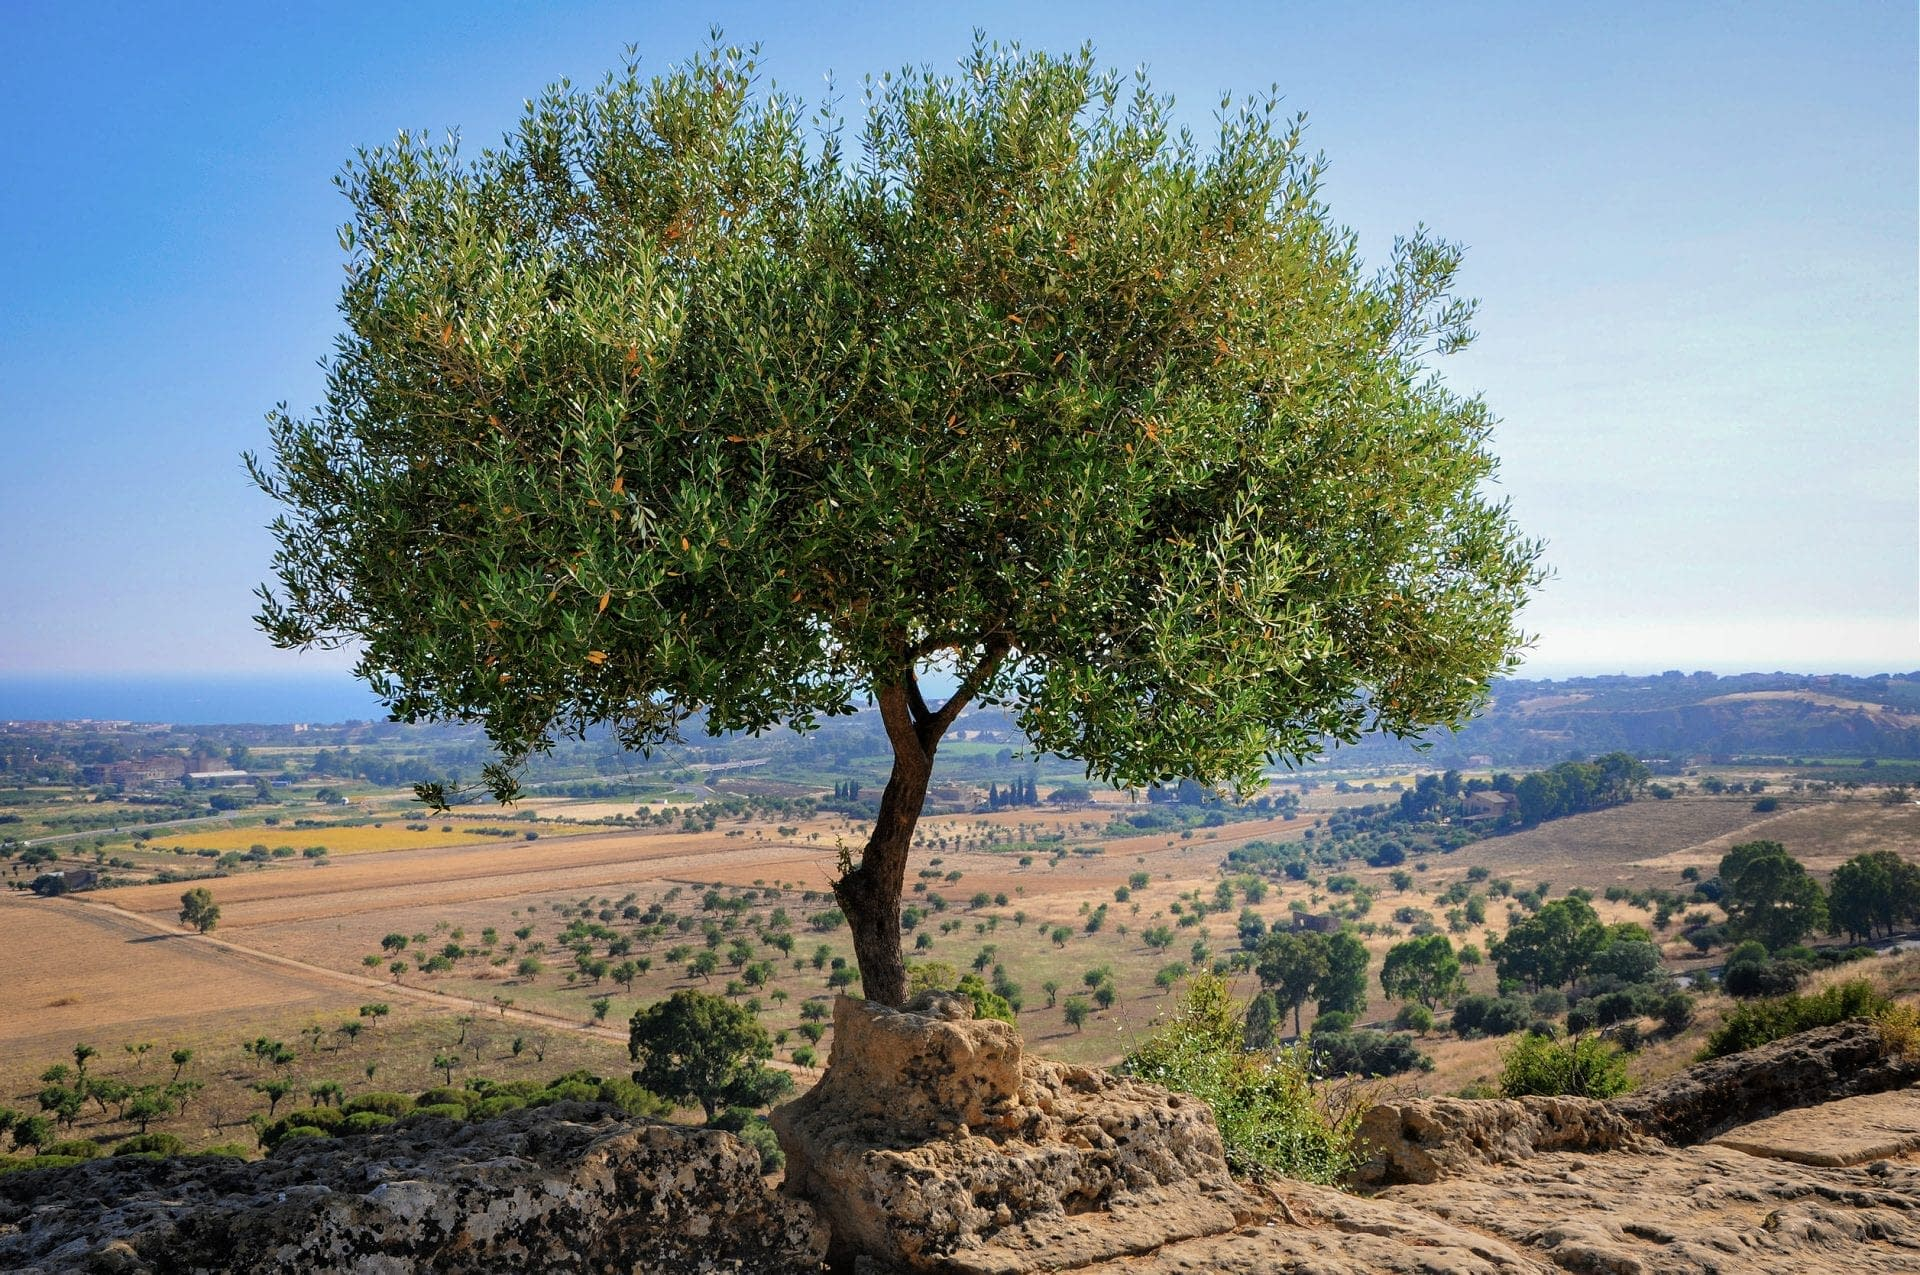 production-world-challenges-await-growers-as-mediterranean-basin-becomes-hotter-and-drier-olive-oil-times